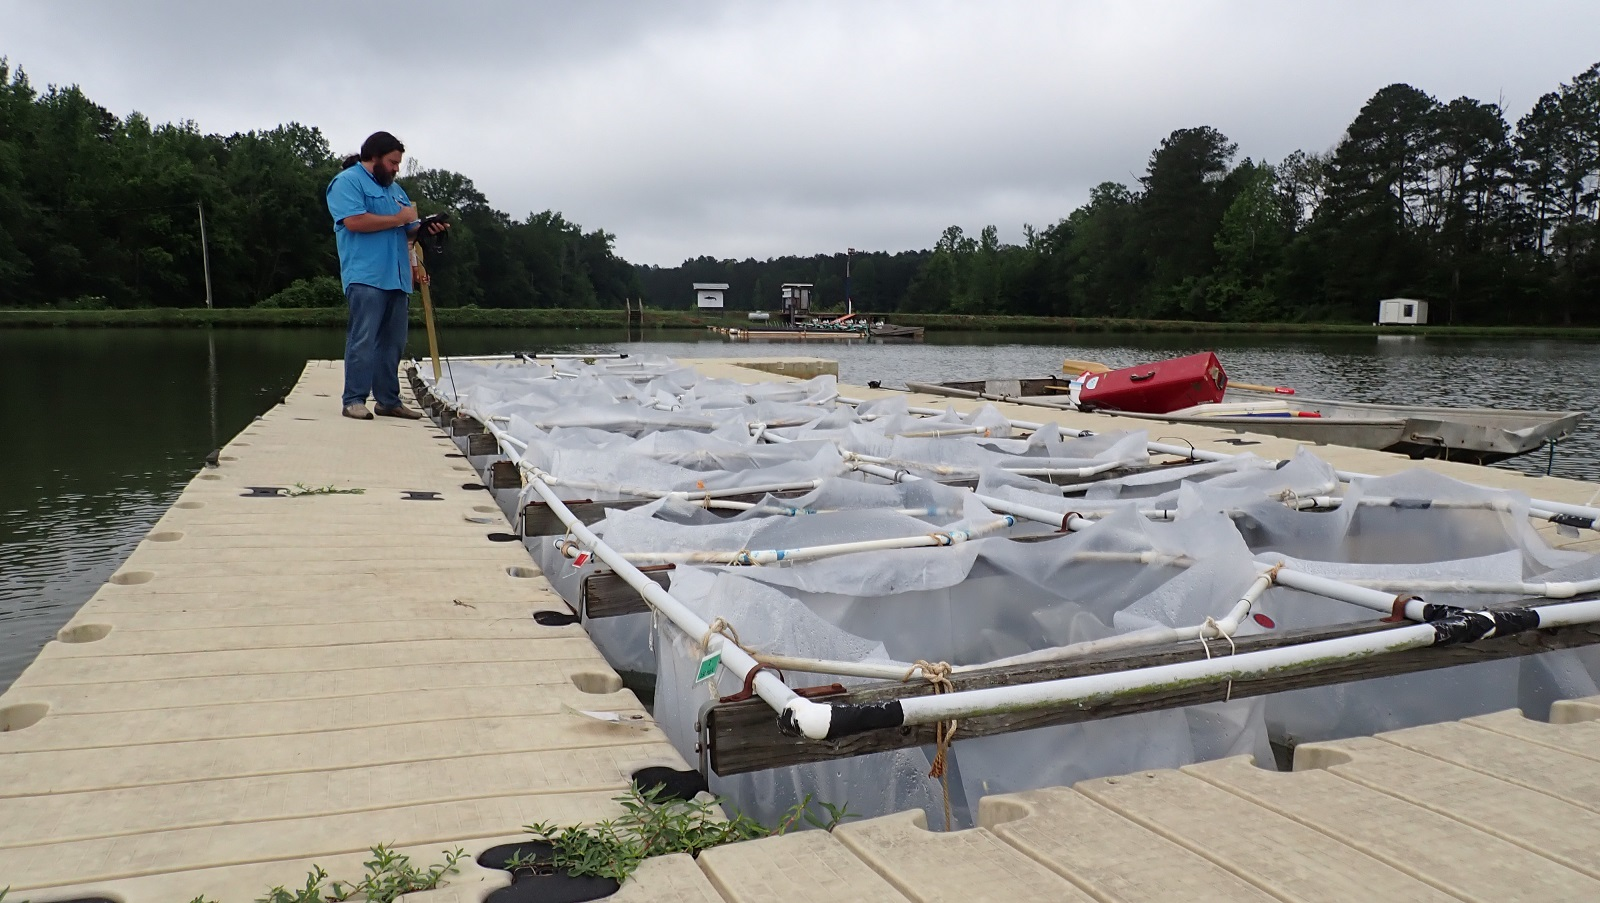 Alan Wilson conducts research on algal blooms at a lake in the Auburn area.